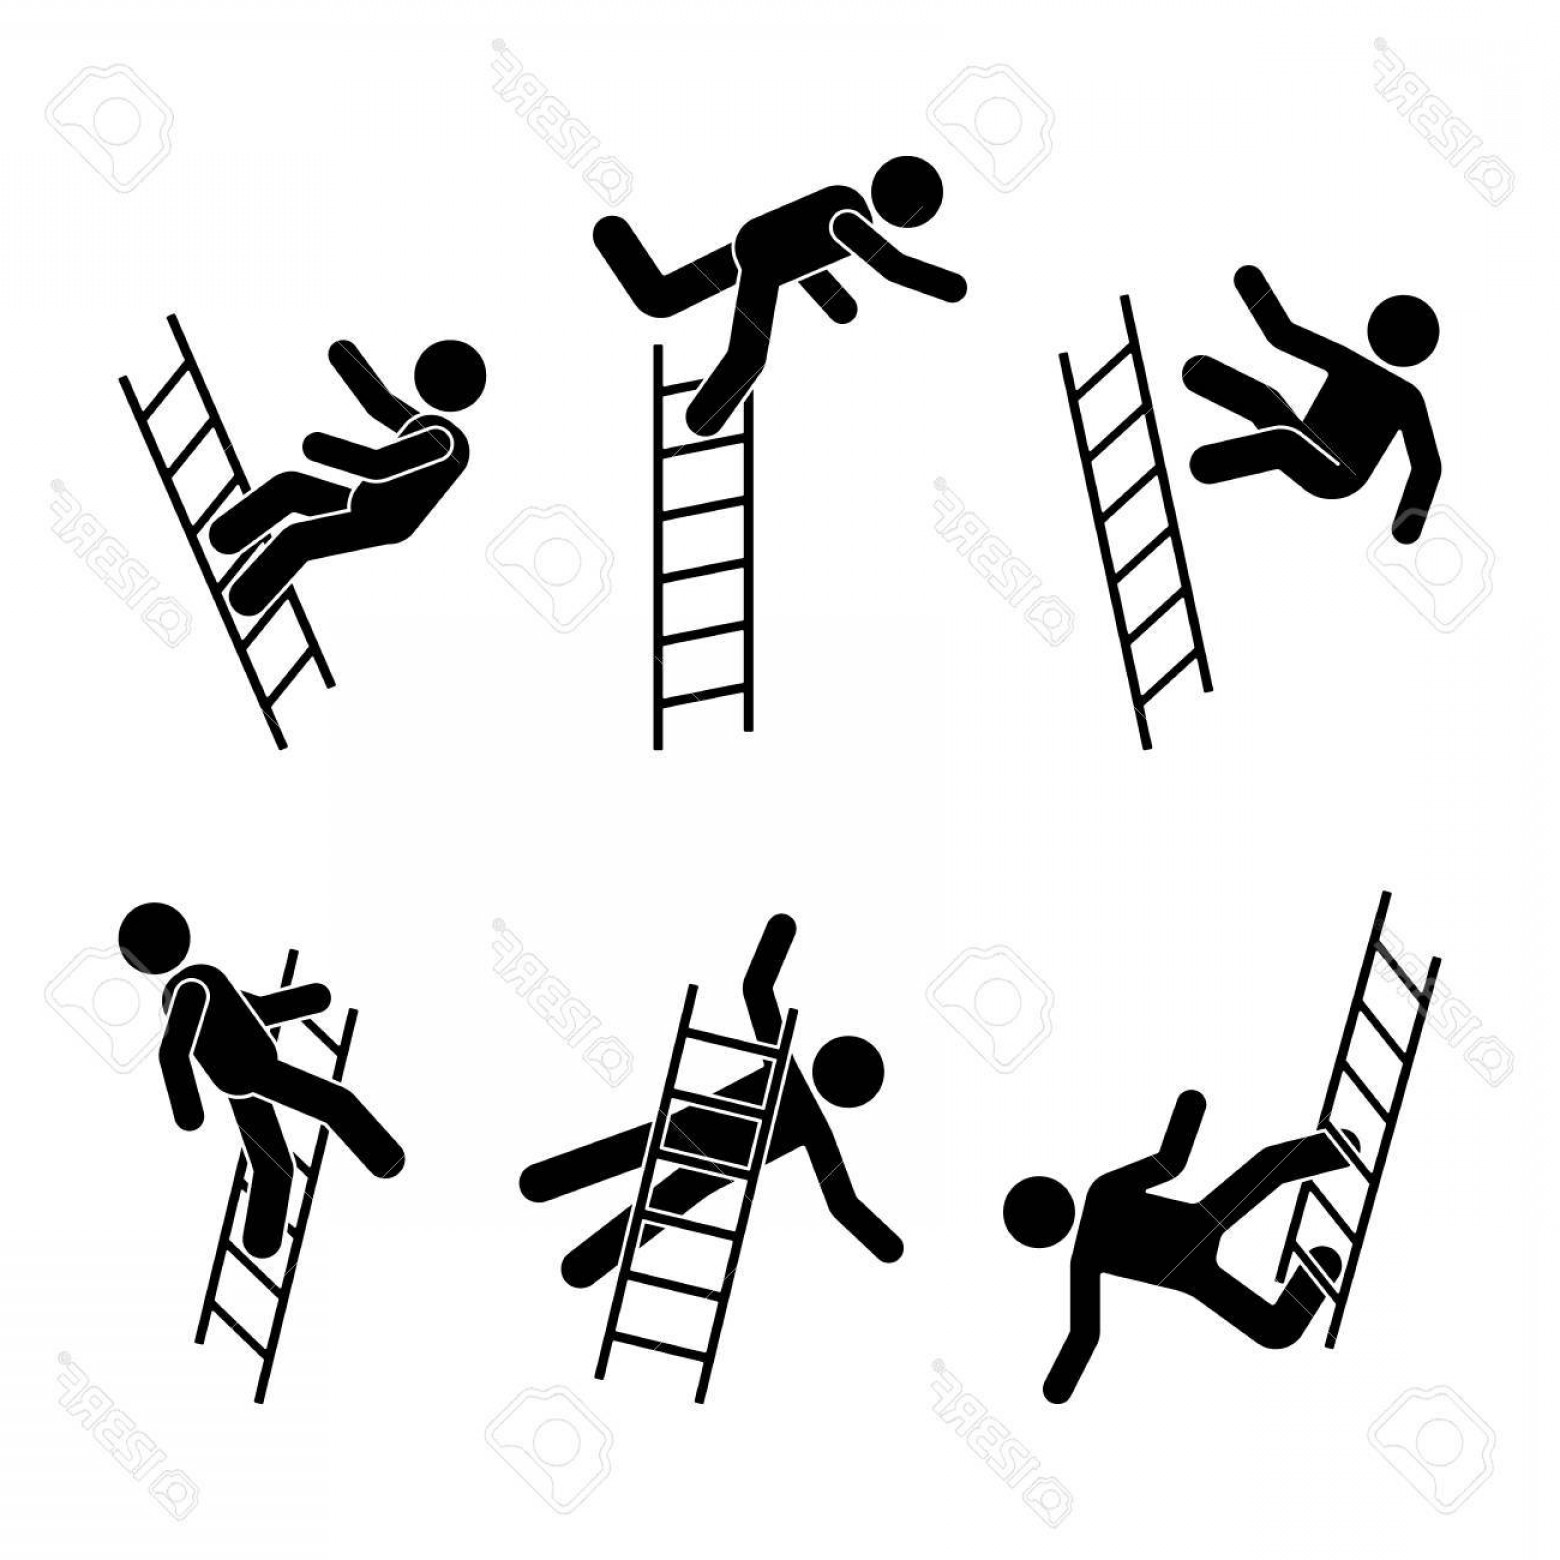 1560x1560 Photostock Vector Man Falling Off A Ladder Stick Figure Pictogram